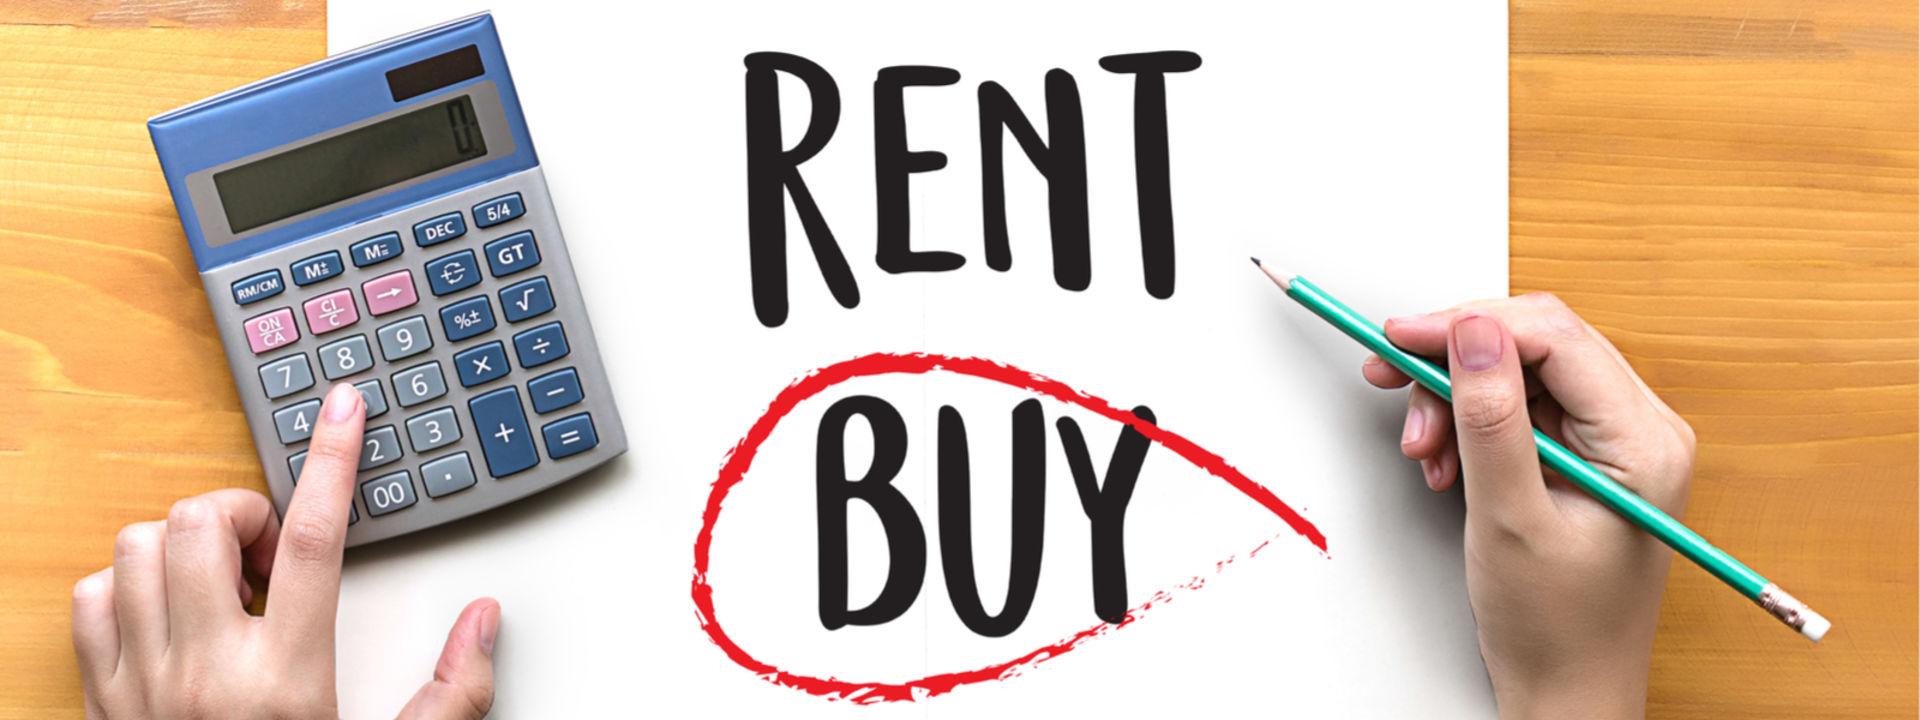 To Rent or To Buy: That is the Question